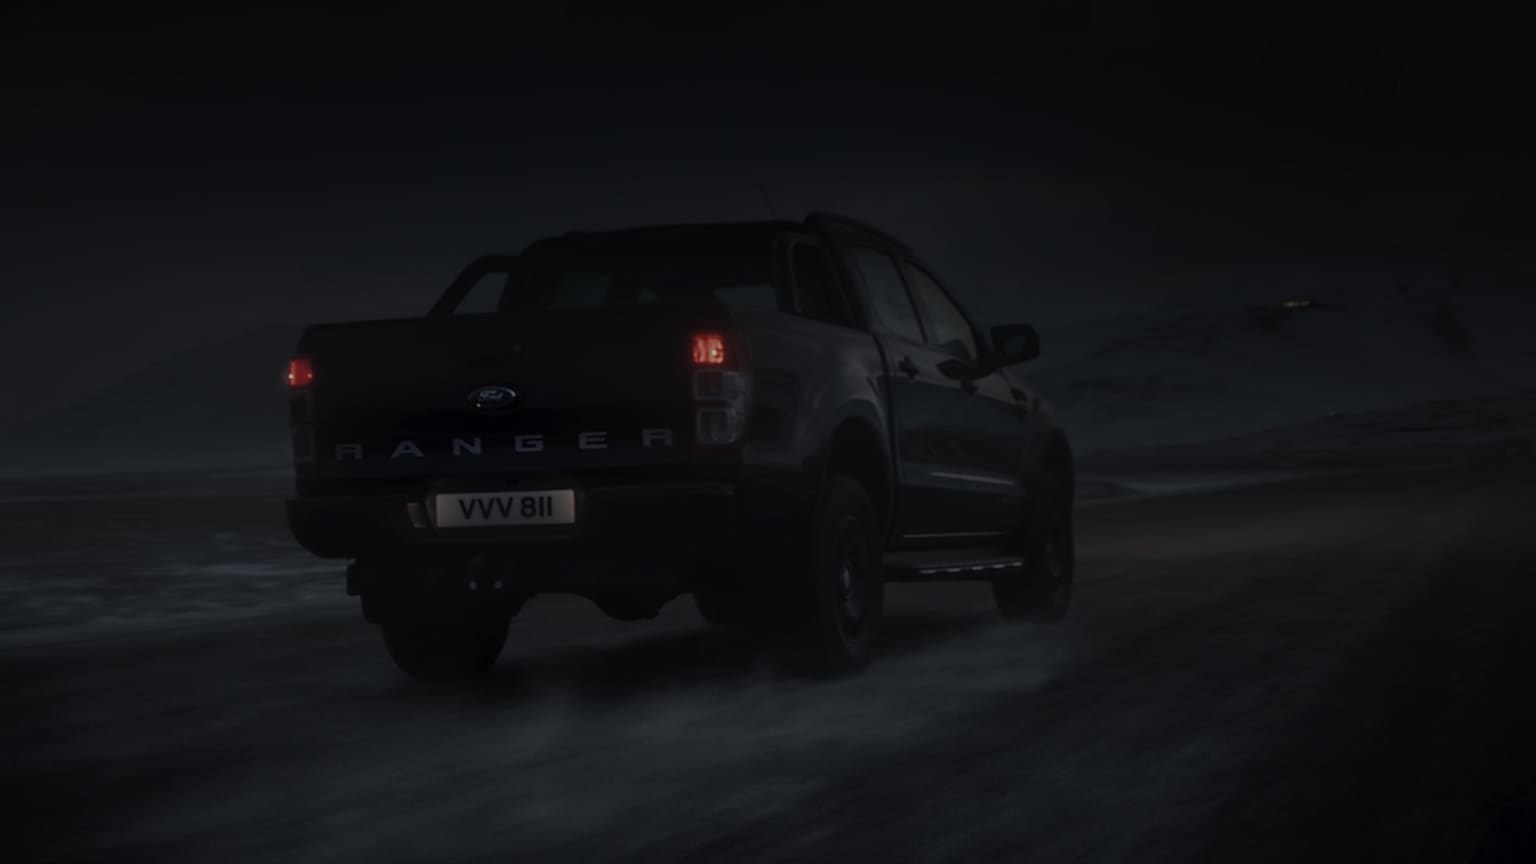 100 Days Of Dark - Ford Ranger 'Black Edition'